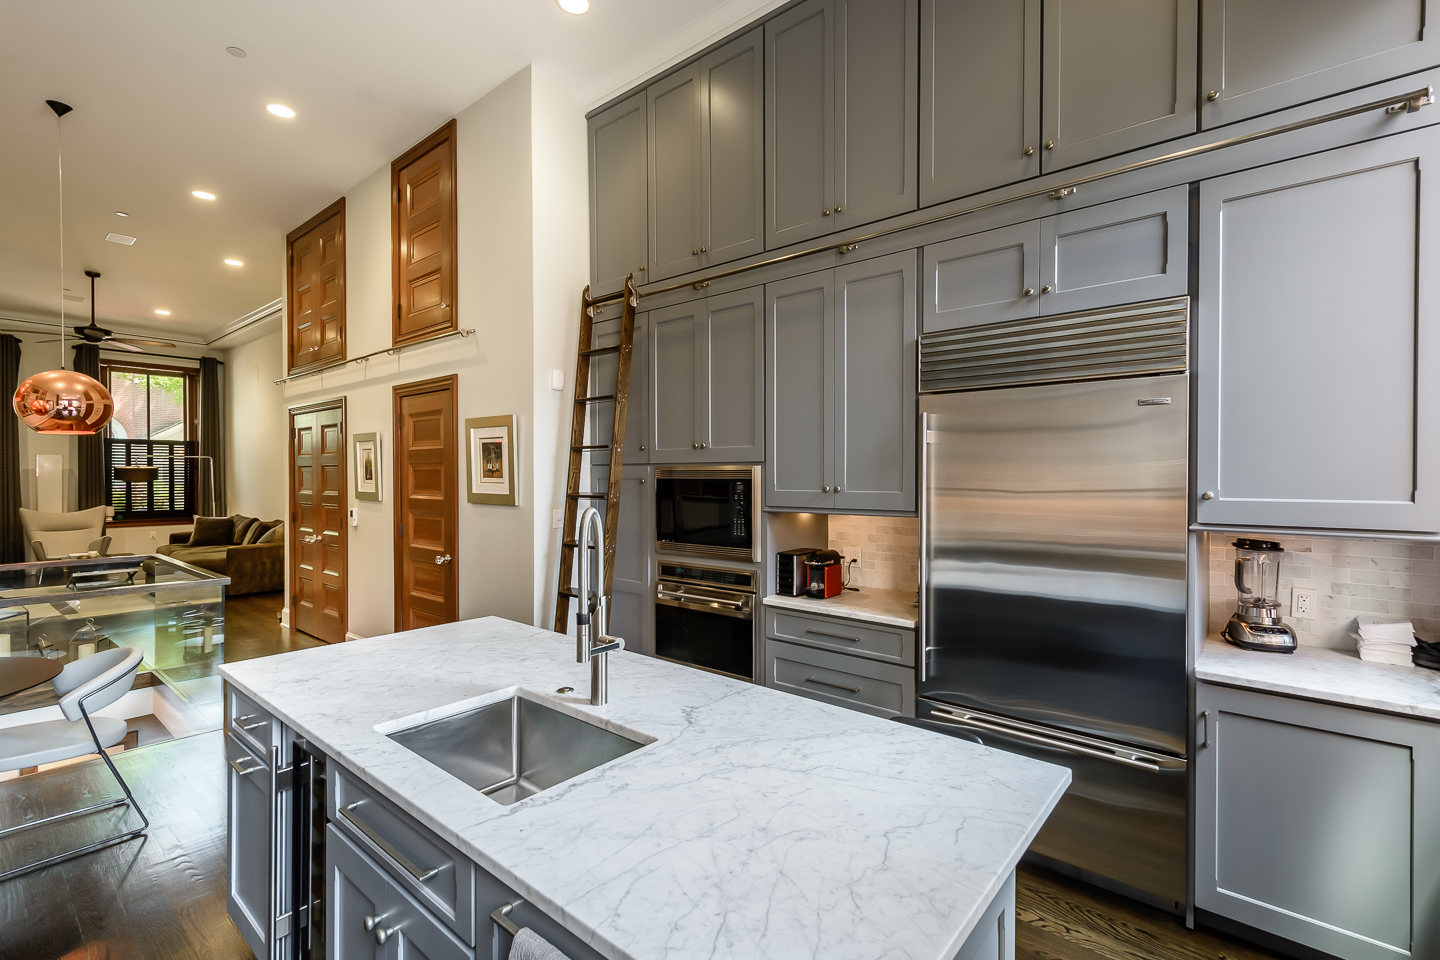 Philadelphia+Rittenhouse+Luxury+Condo+Home-7.jpg